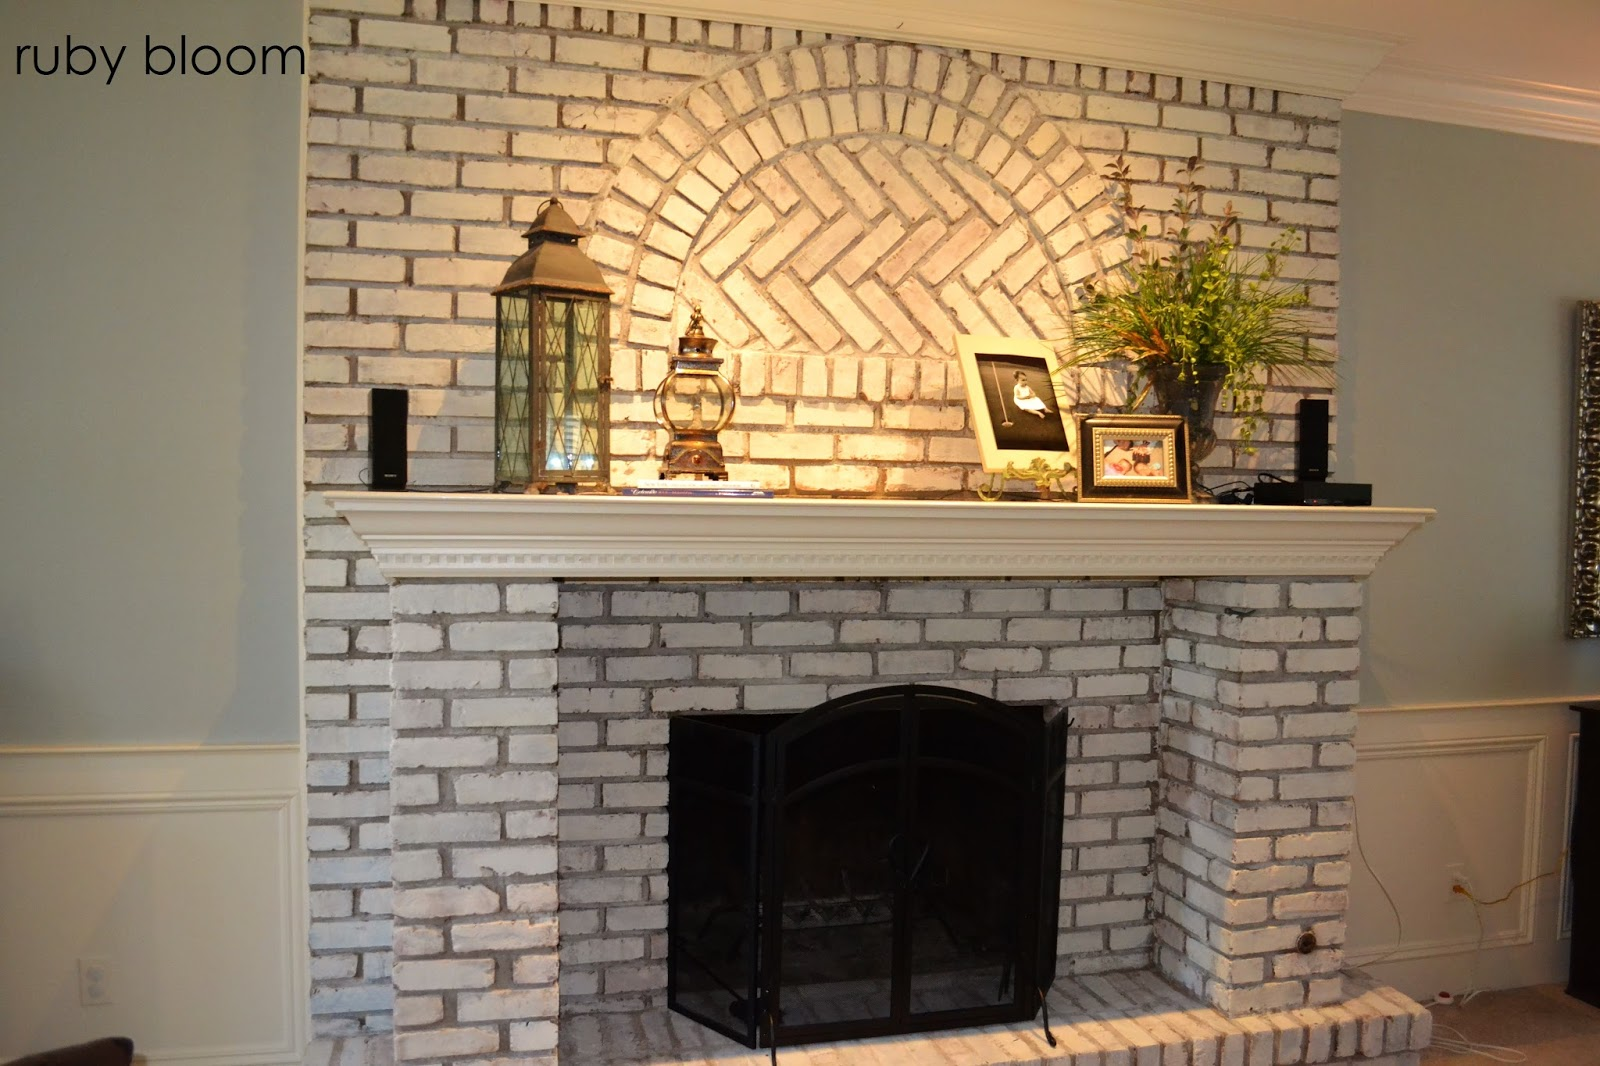 Ruby bloom painted brick fireplace for Bricks painting design